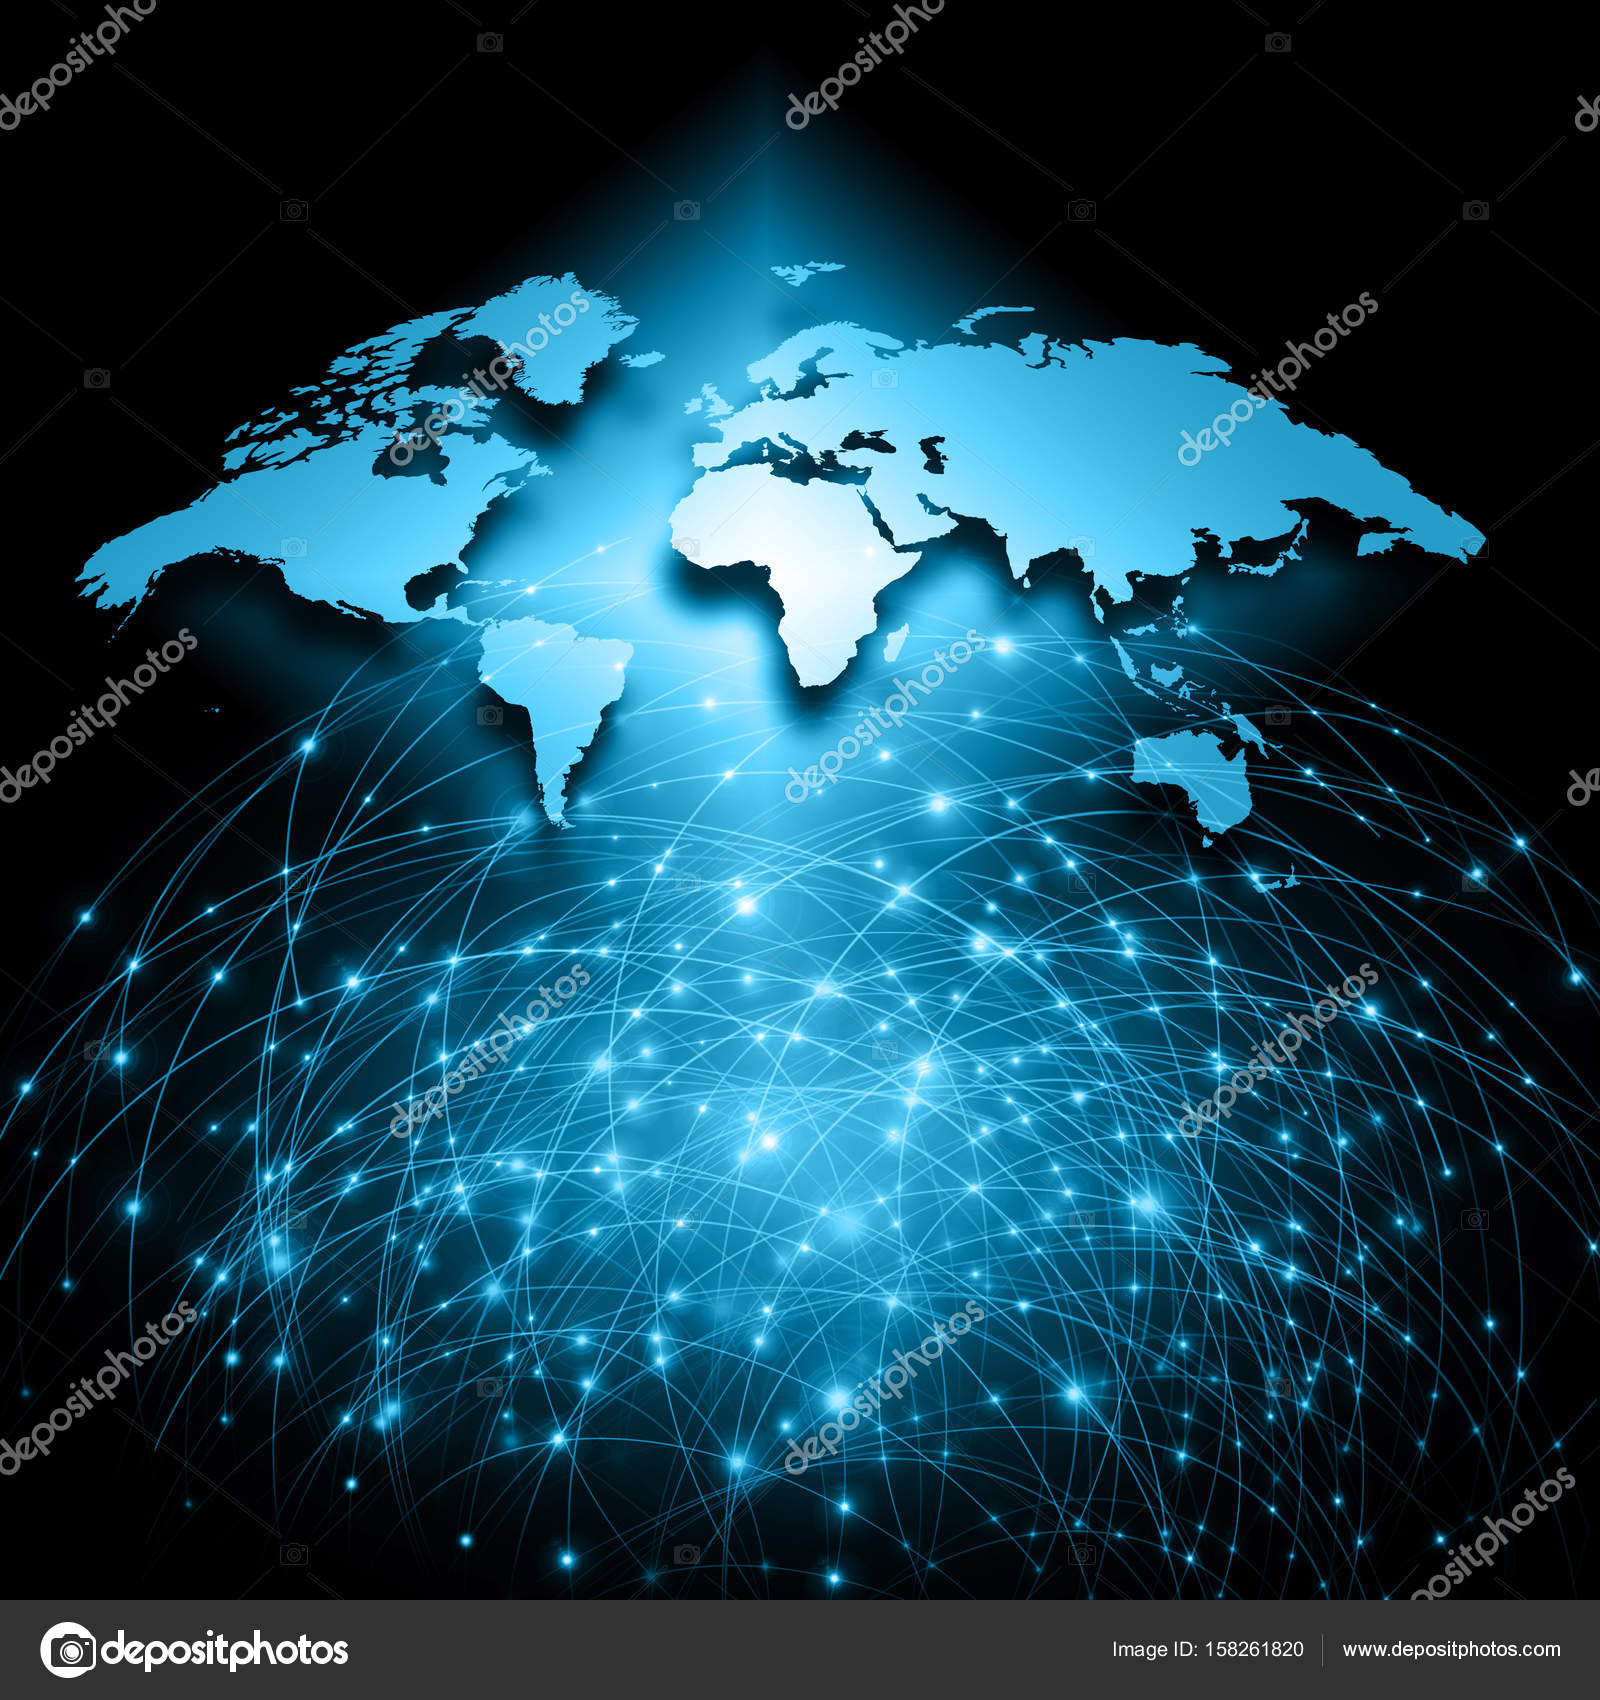 World map on a technological background glowing lines symbols of world map on a technological background glowing lines symbols of the internet radio television mobile and satellite communications gumiabroncs Image collections